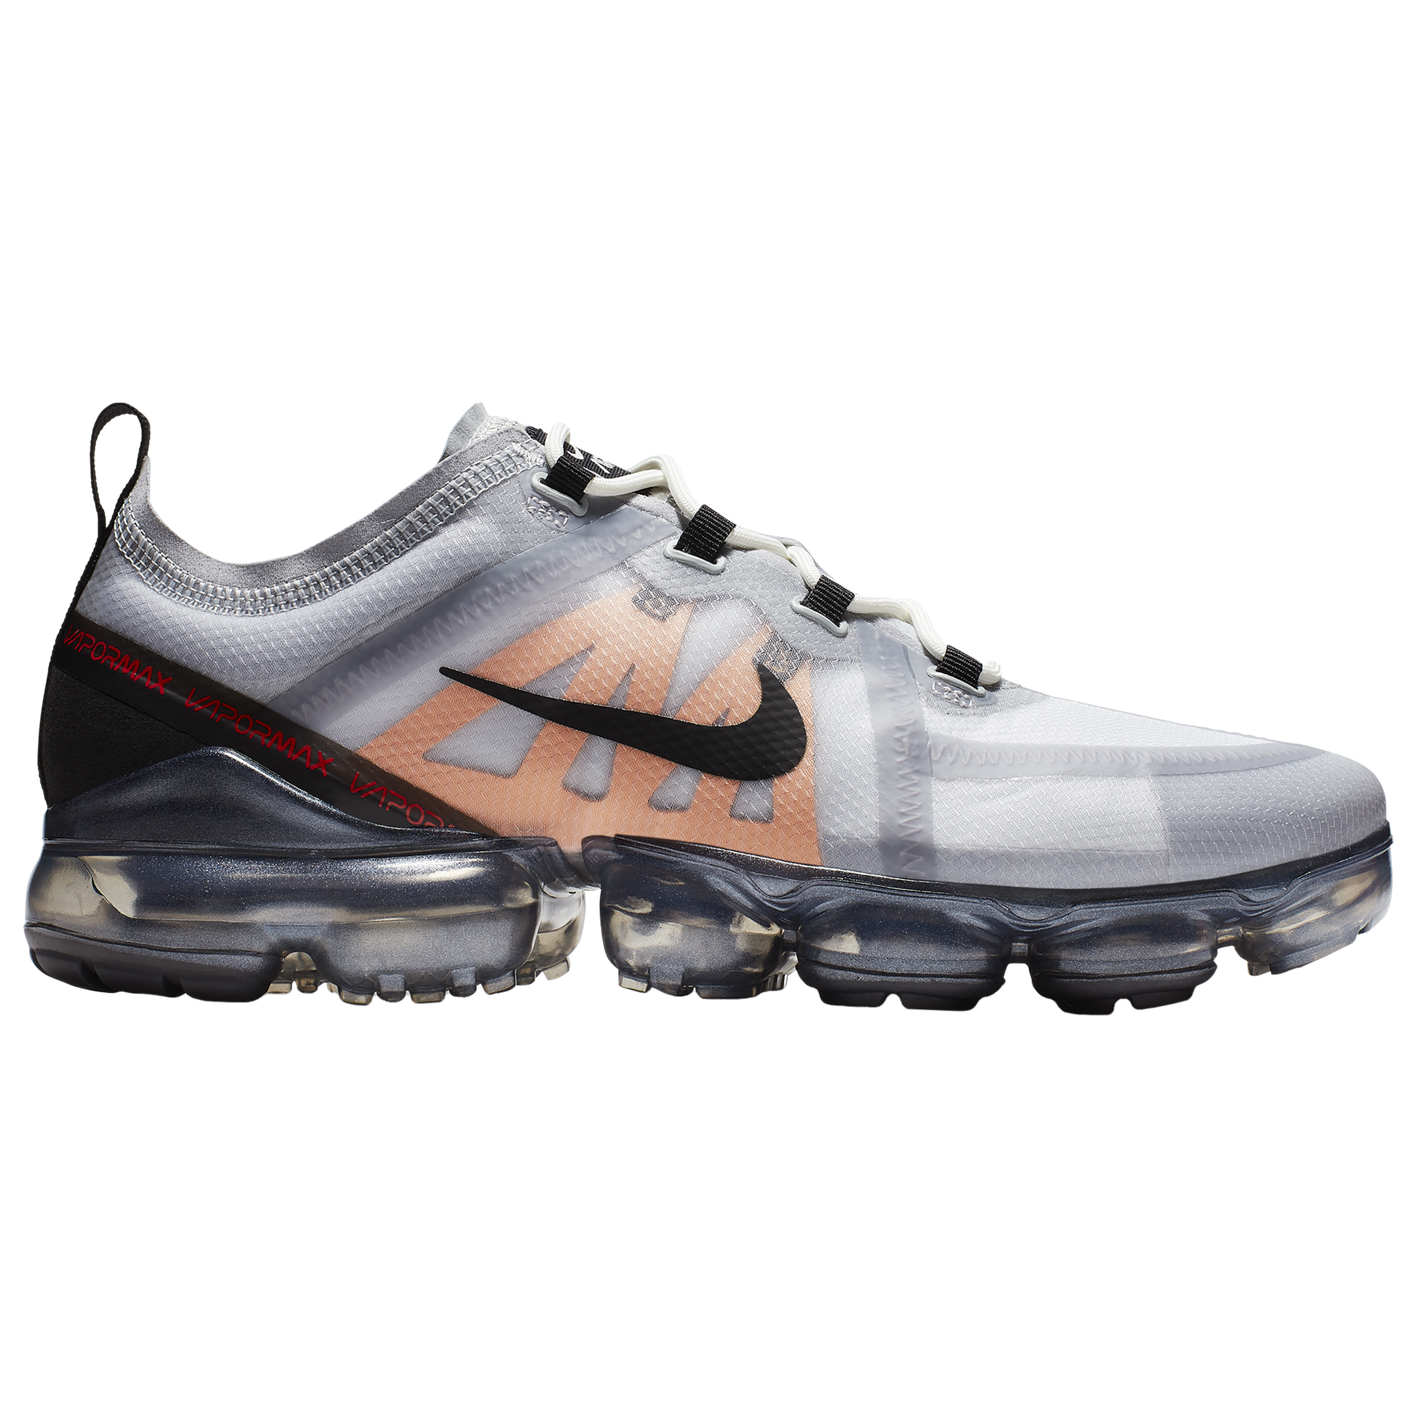 694232cbaad Nike Air Vapormax 2019 - Men s - Casual - Shoes - Grey Black Orange